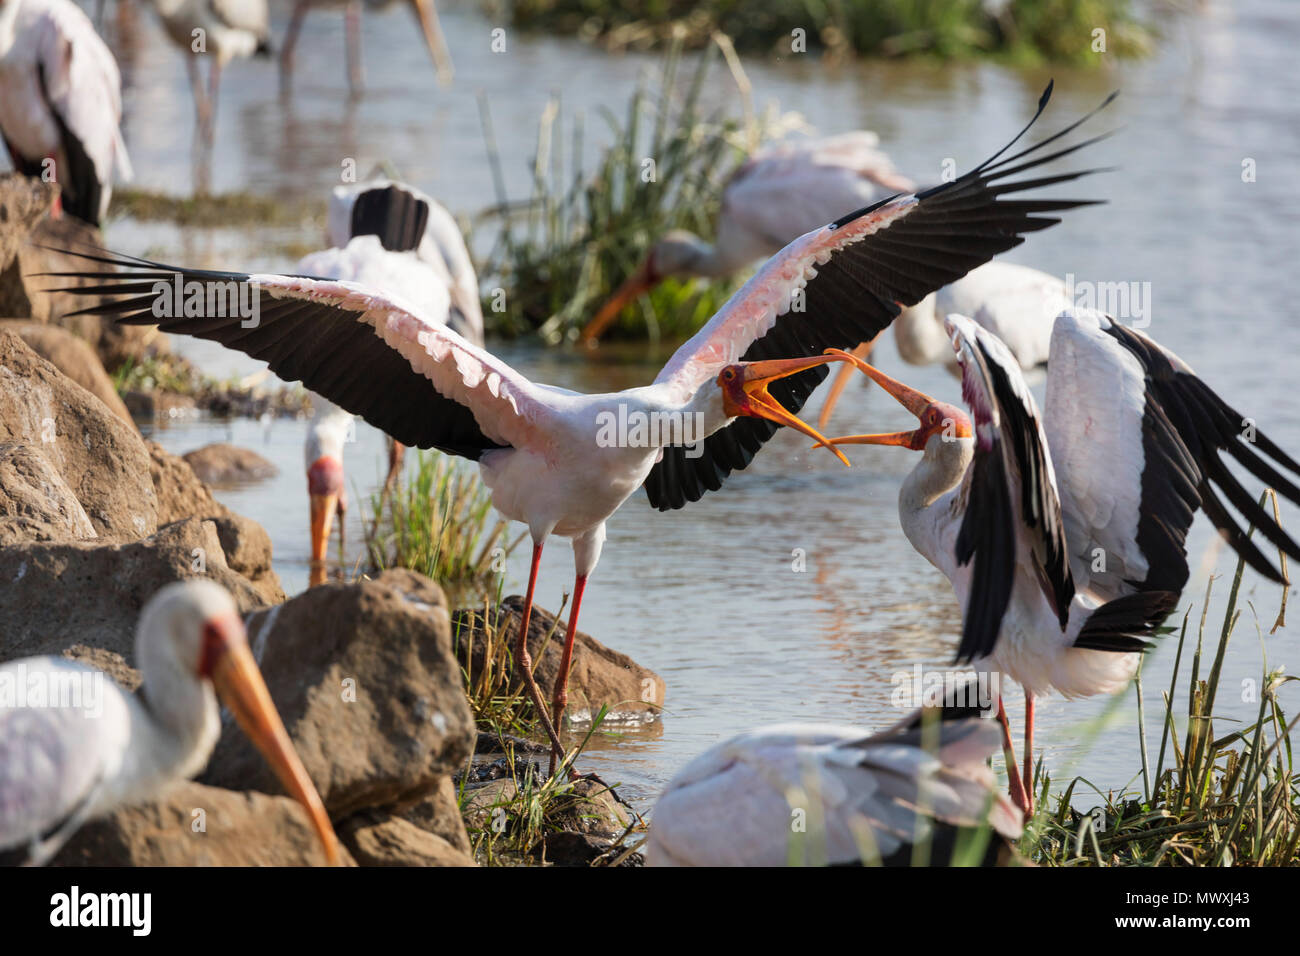 Yellow billed stork (Mycteria ibis) fighting, Lake Manyara National Park, Tanzania, East Africa, Africa - Stock Image